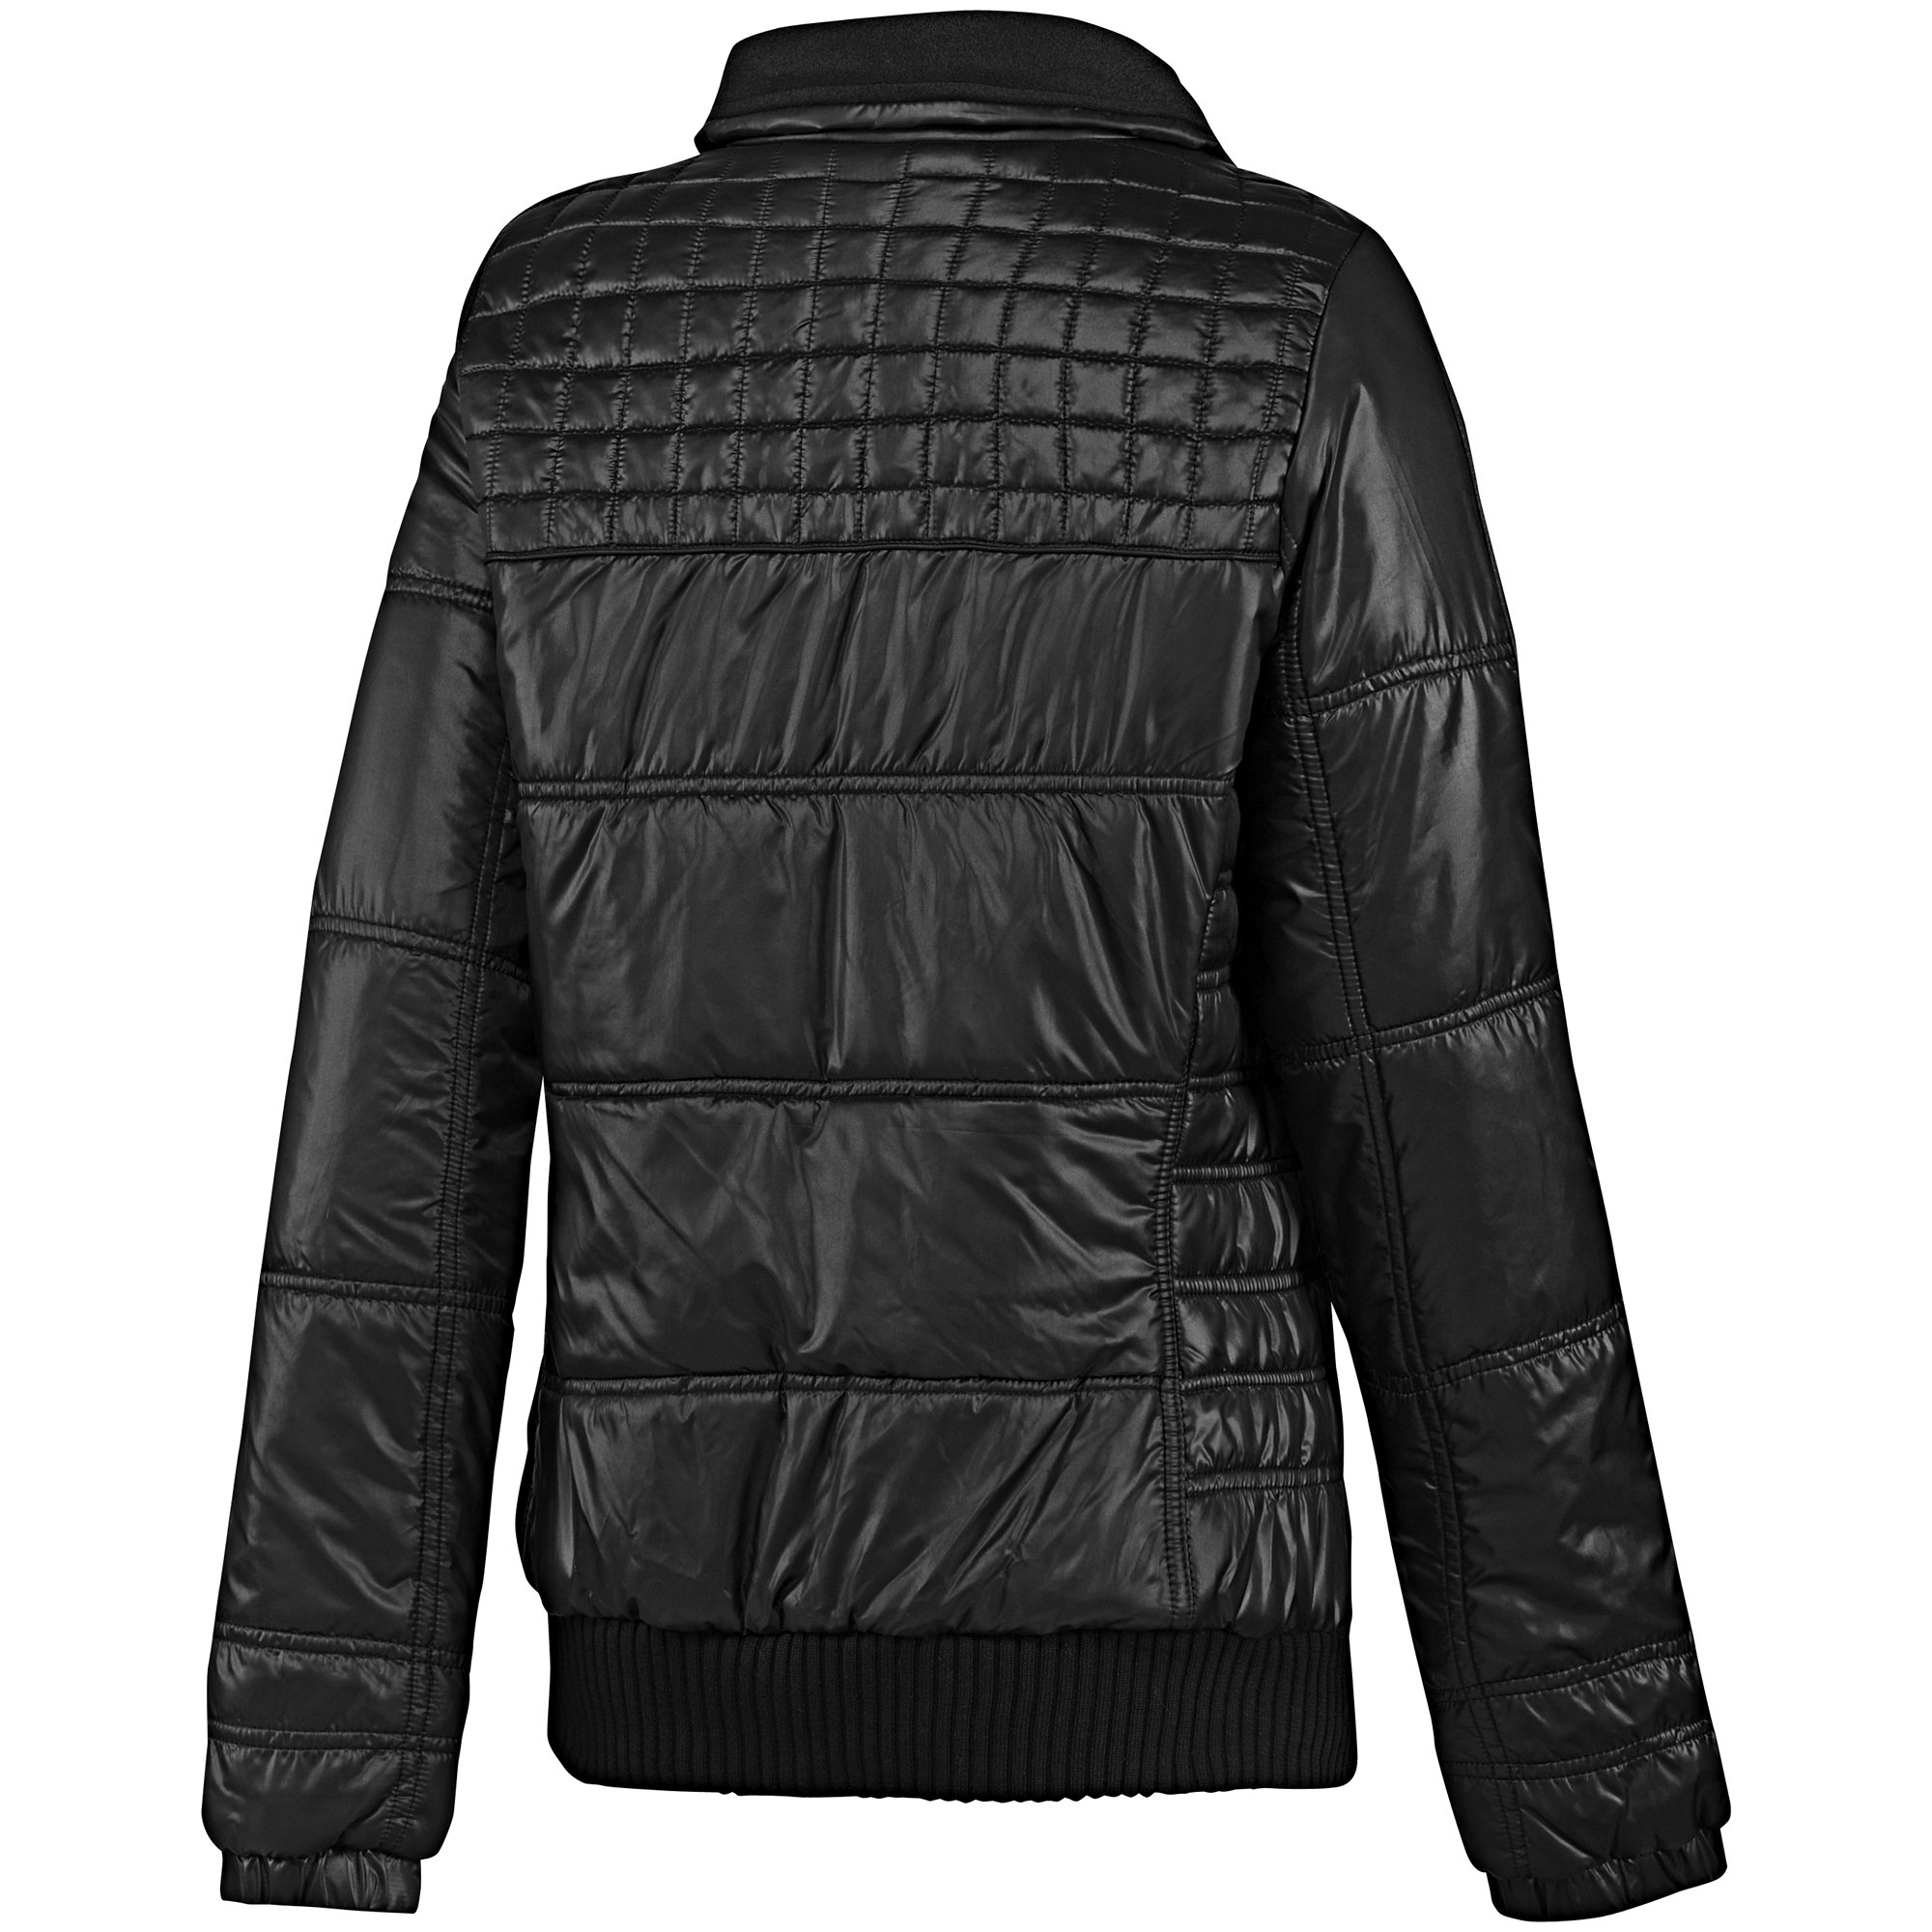 adidas 3 stripe damen winterjacke schwarz jacke ebay. Black Bedroom Furniture Sets. Home Design Ideas